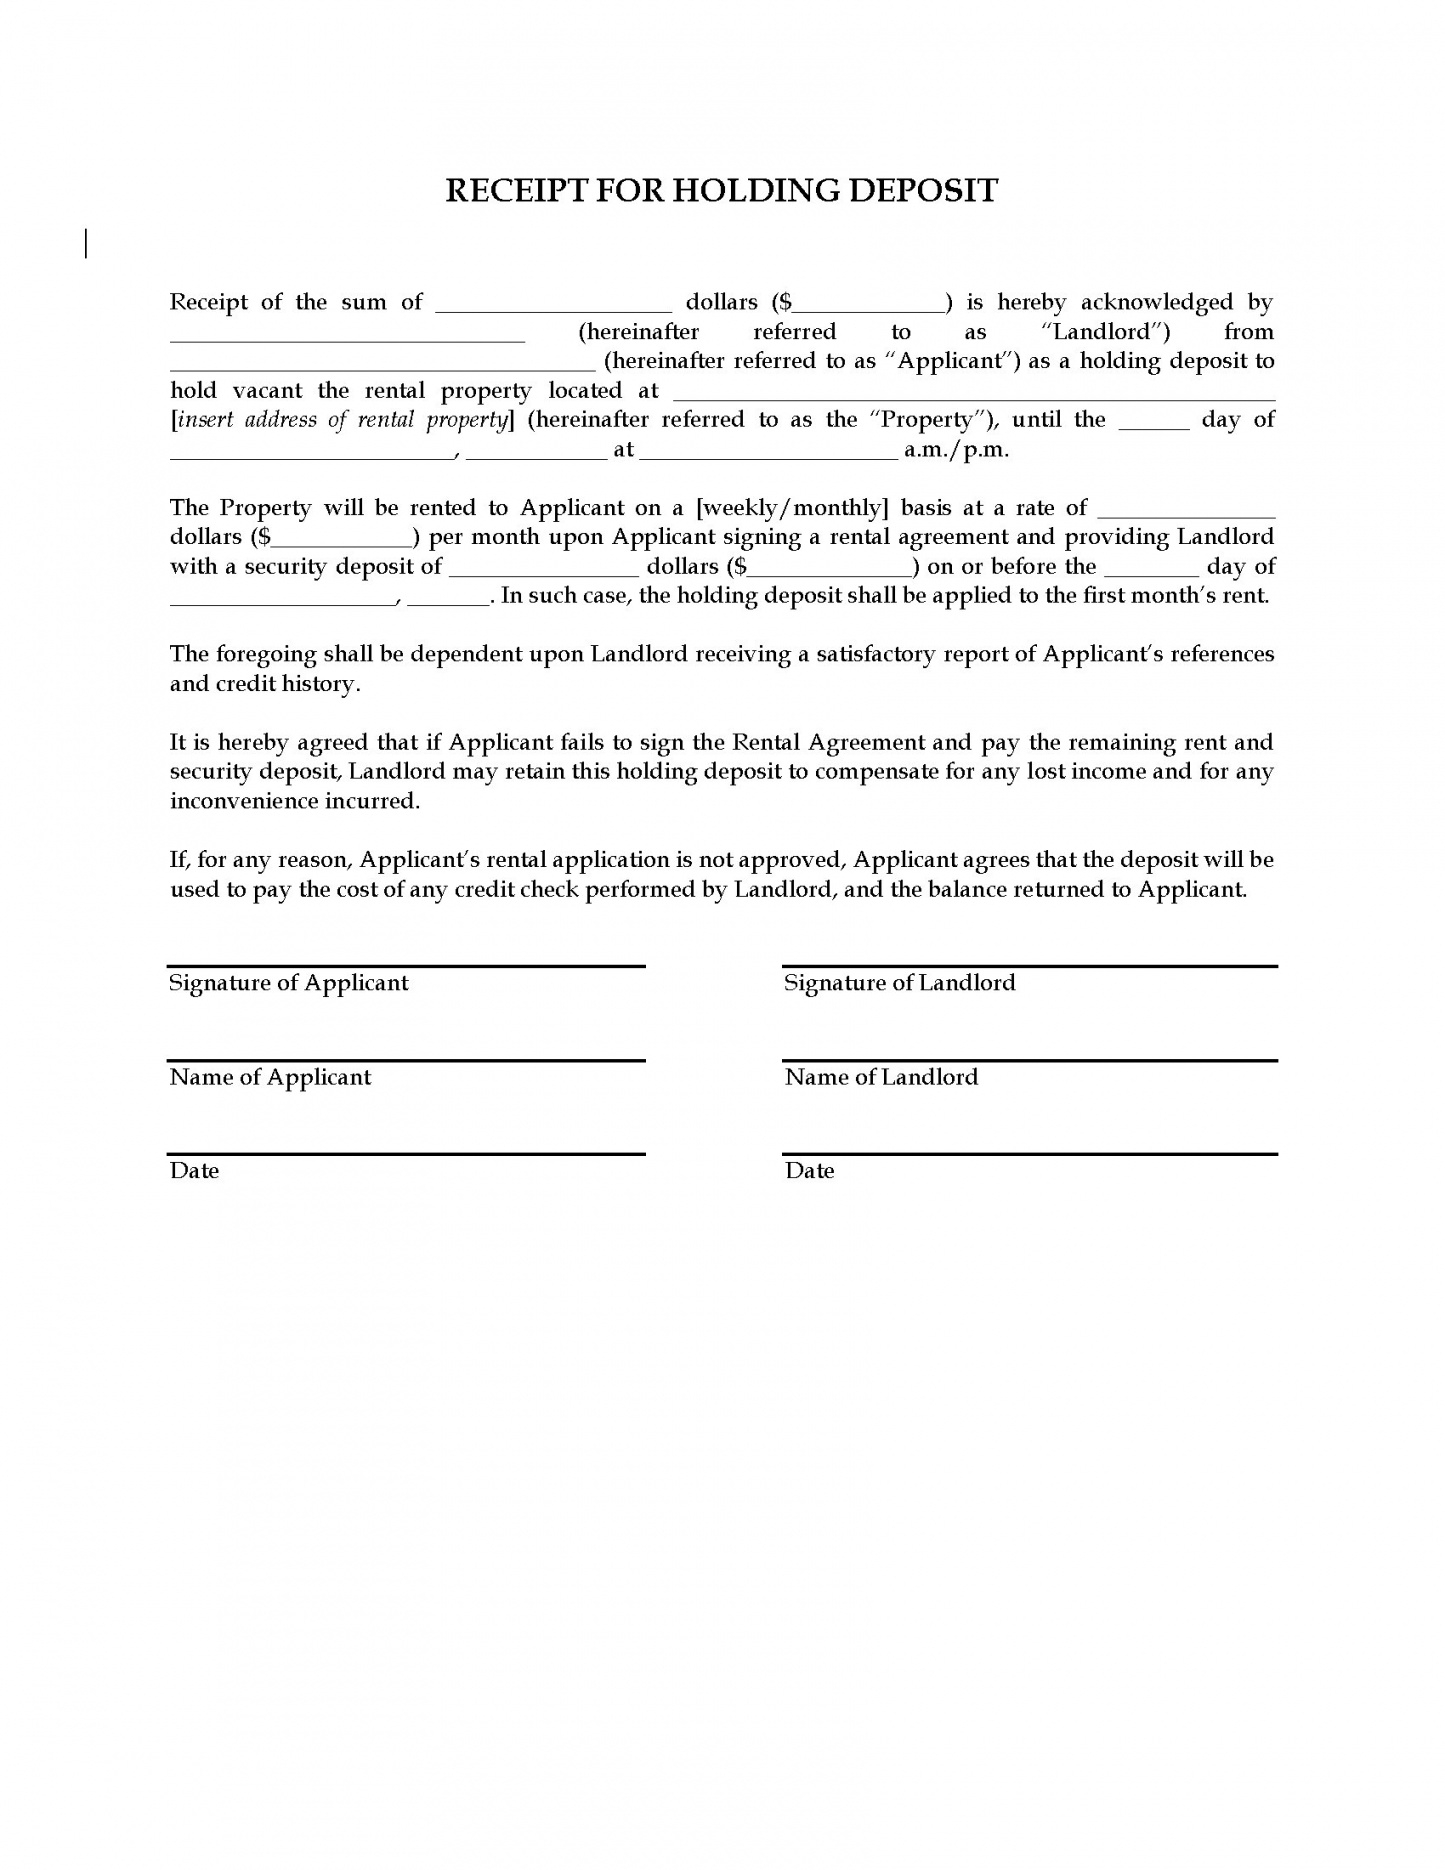 Receipt For Holding Deposit On Rental Property | Legal Forms And